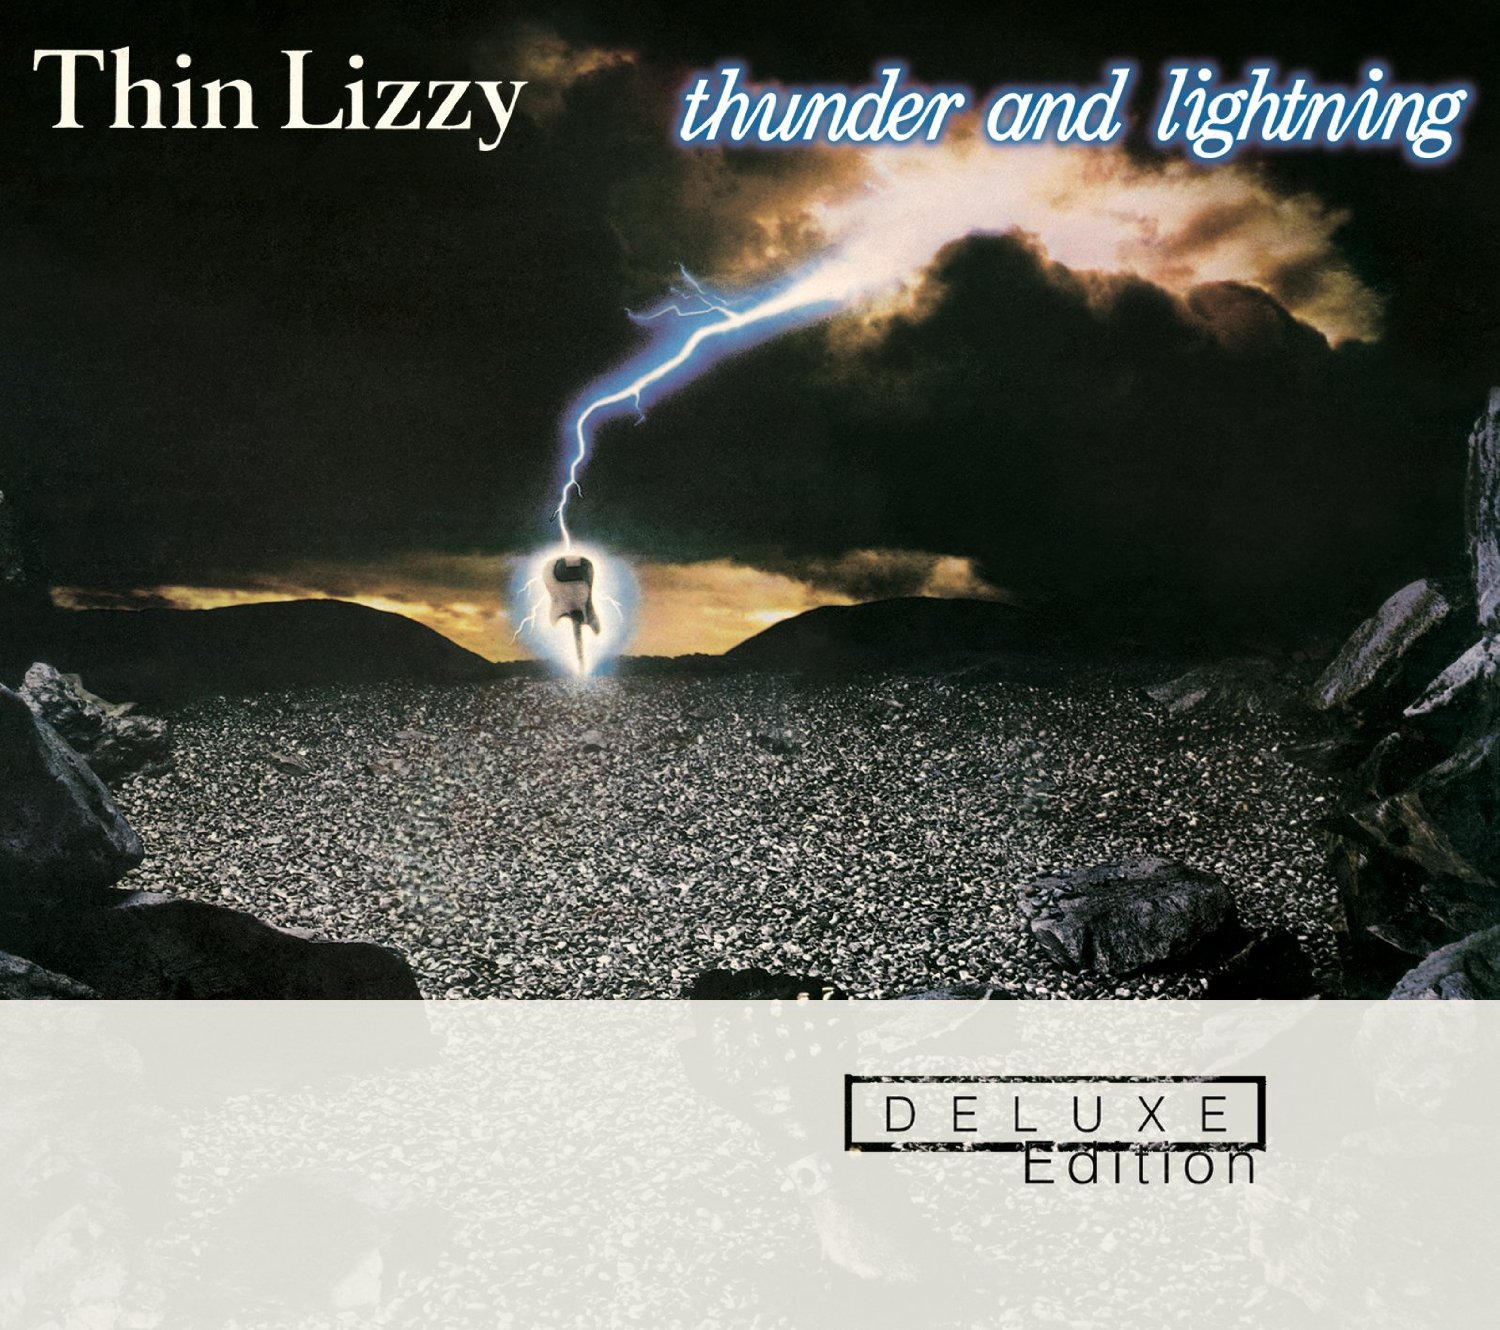 Lighting Deluxe preview renegade and thunder lighting deluxe edition thin